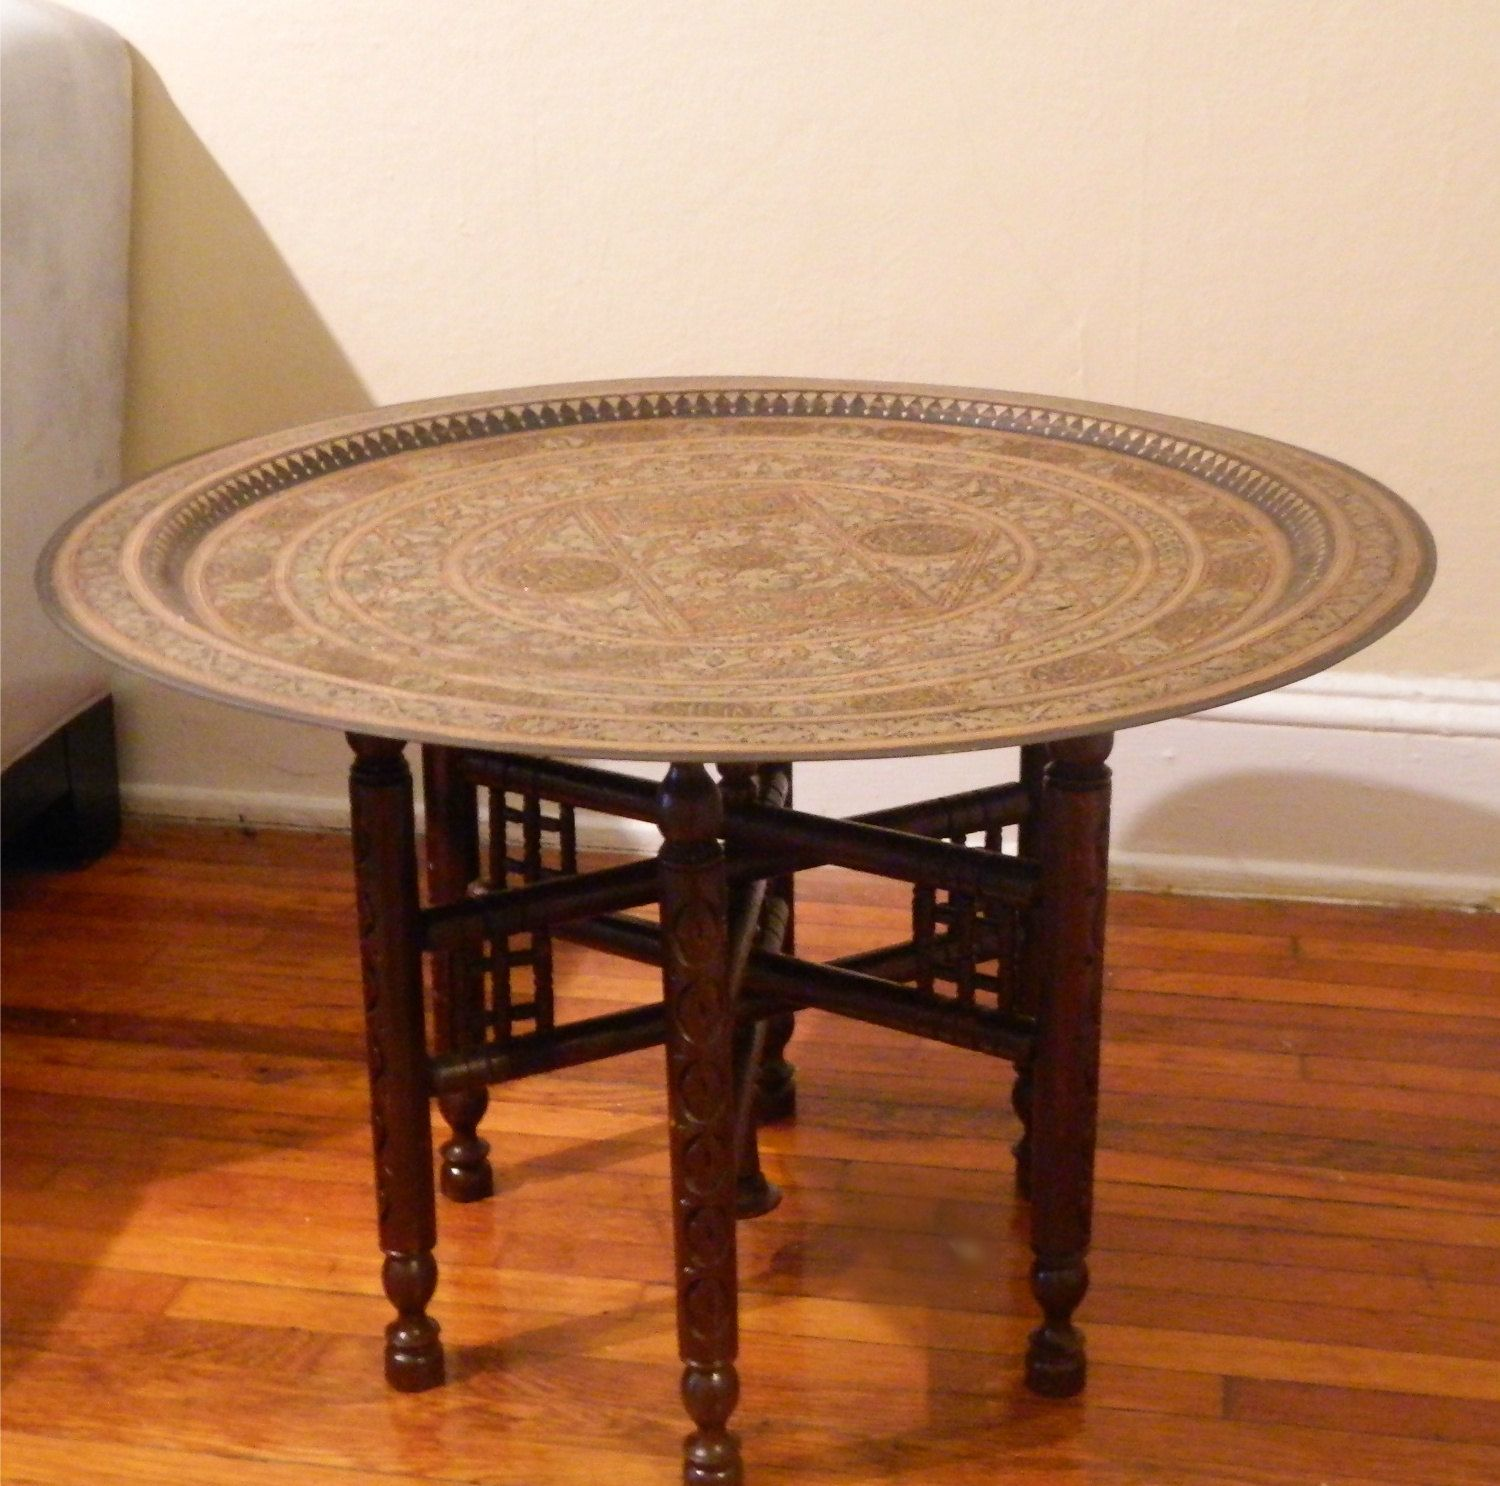 Attractive Round Moroccan Hammered Brass Tray Table. $300.00, Via Etsy.